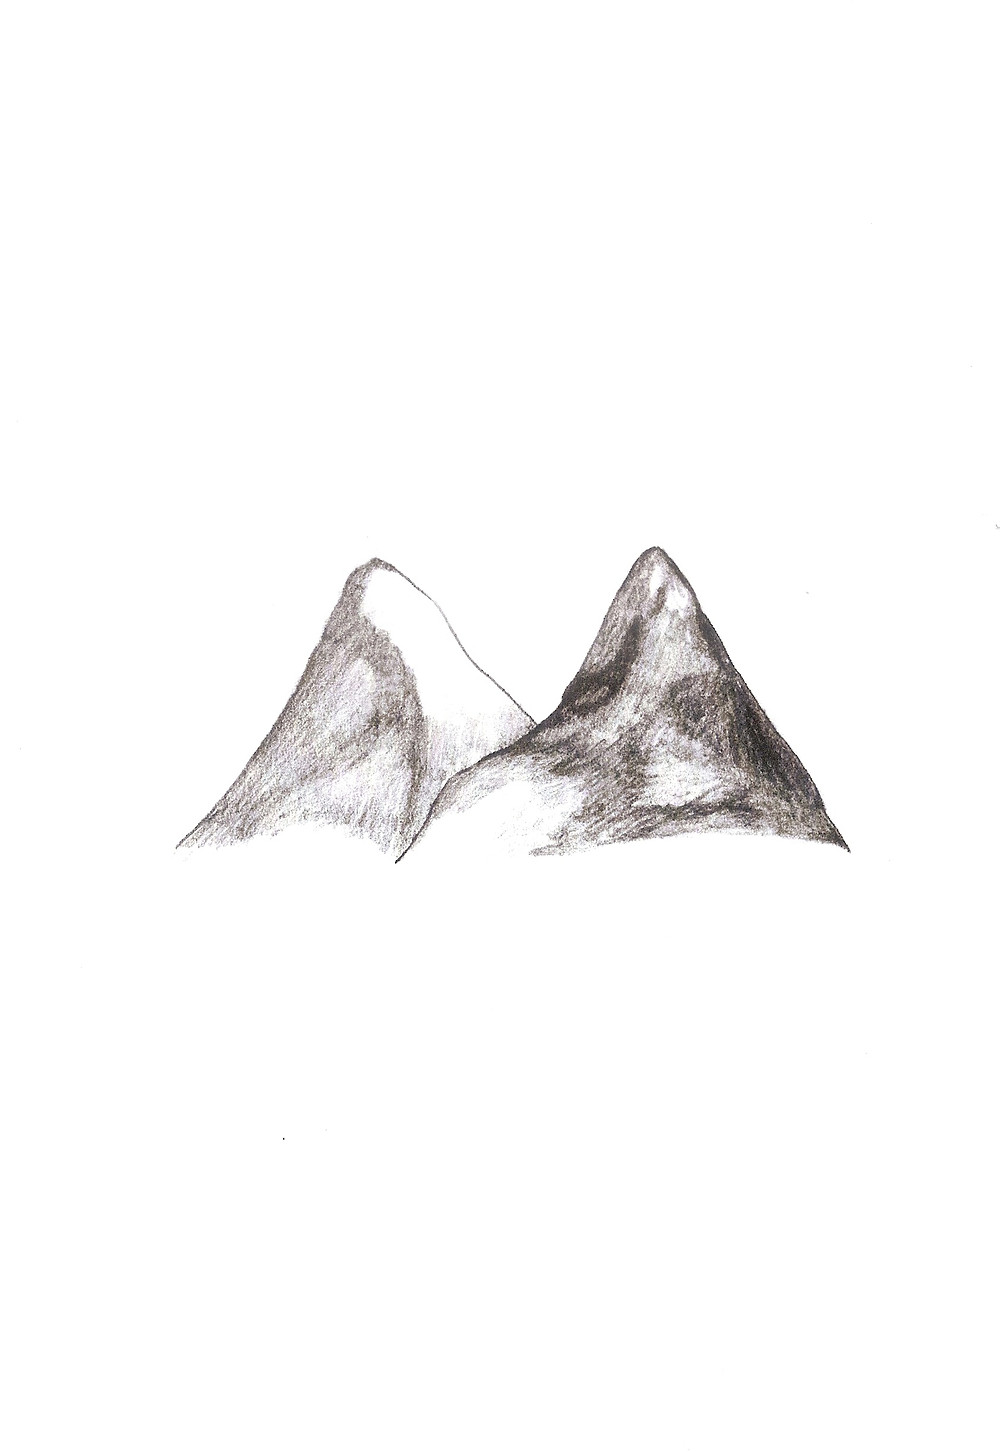 Tow Mountains_22.7x15.8cm_drawing on the paper.2012.jpg